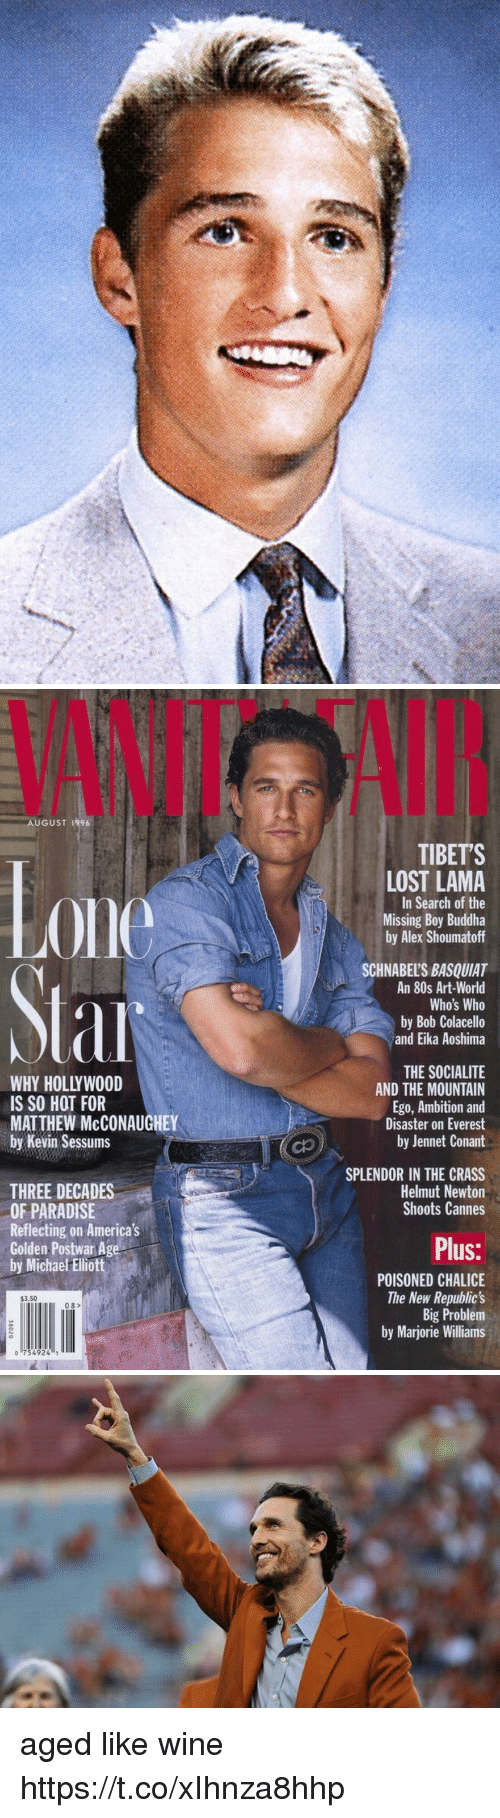 80s, Matthew McConaughey, and Paradise: VANIT  AI  AUGUST 1996  TIBETS  one  LOST LAMA  In Search of the  Missing Boy Buddha  by Alex Shoumatoff  SCHNABEL'S BASQUIAT  An 80s Art-World  Who's Who  by Bob Colacello  and Eika Aoshima  WHY HOLLYWOOD  IS SO HOT FOR  MATTHEW McCONAUGHEY  by Kevin Sessums  THE SOCIALITE  AND THE MOUNTAIN  Ego, Ambition and  Disaster on Everest  by Jennet Conant  SPLENDOR IN THE CRASS  Helmut Newton  Shoots Cannes  THREE DECADES  OF PARADISE  Reflecting on America's  Golden Postwar Age  by Michae Ellott  Plus:  POISONED CHALICE  The New Republic's  Big Problem  by Marjorie Williams  $3.50  08>  o 754924 aged like wine https://t.co/xIhnza8hhp